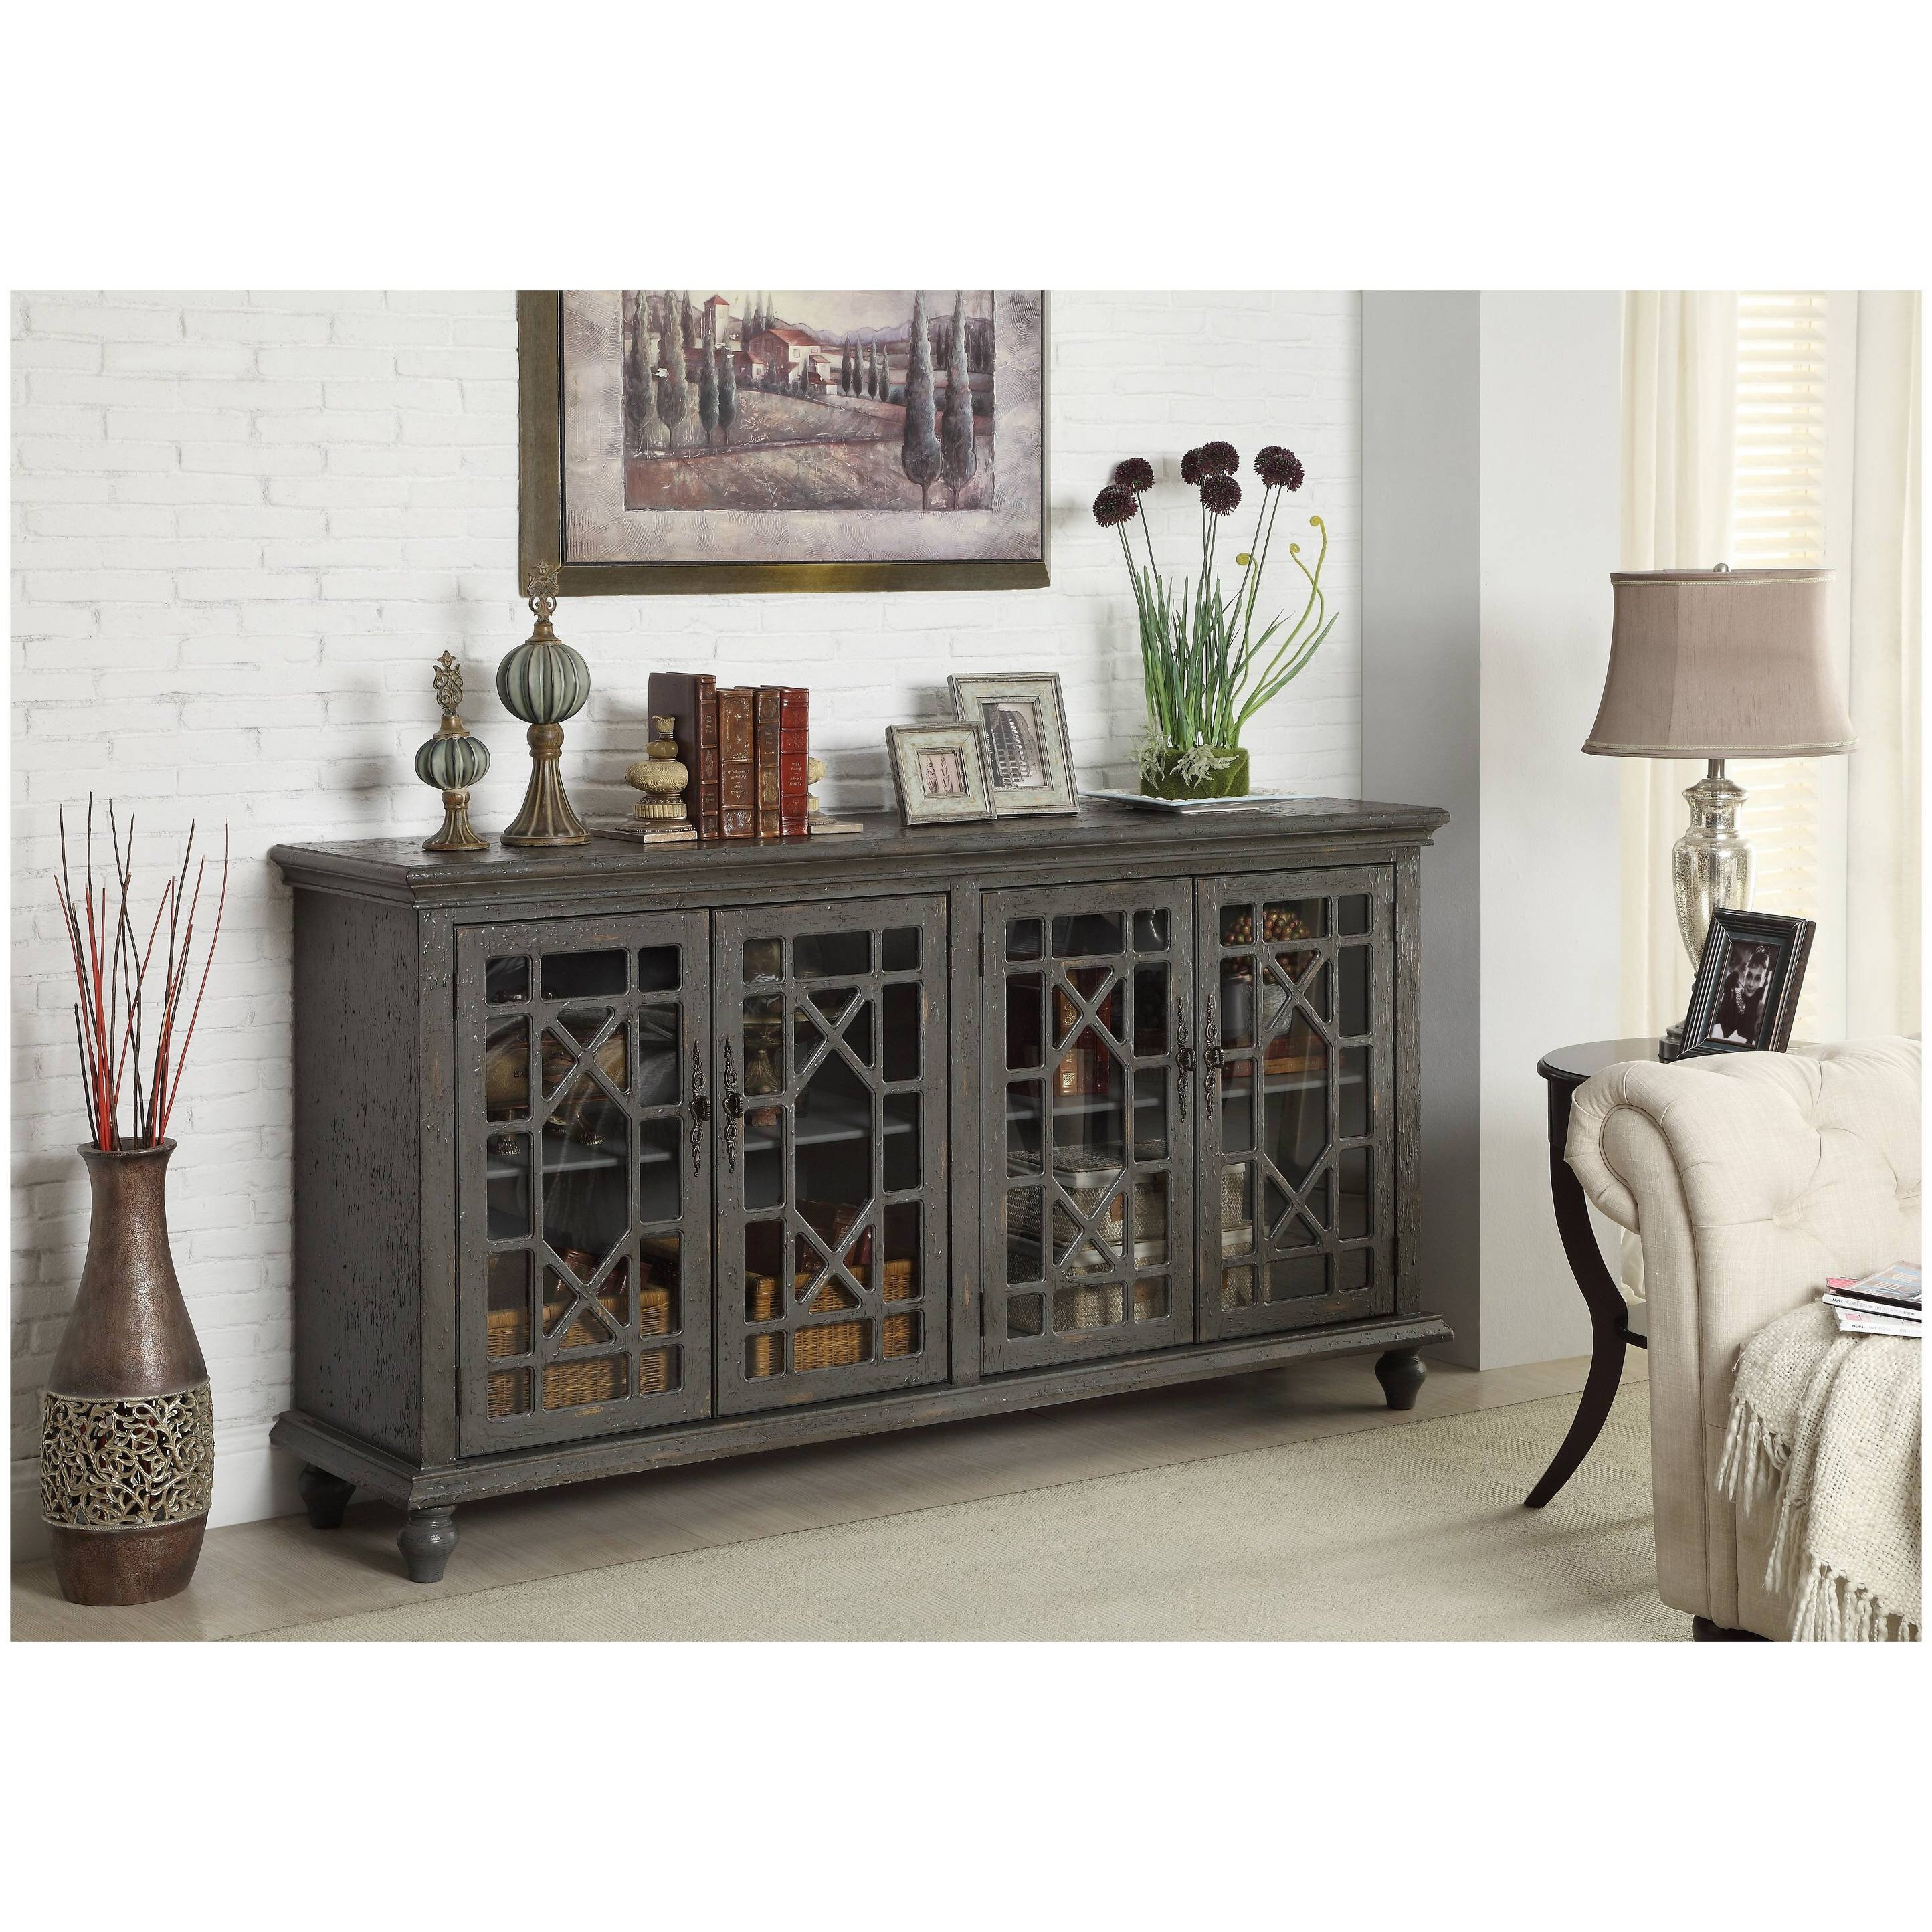 Bungalow rose jaouhara tv stand reviews wayfair for Glass living room furniture company